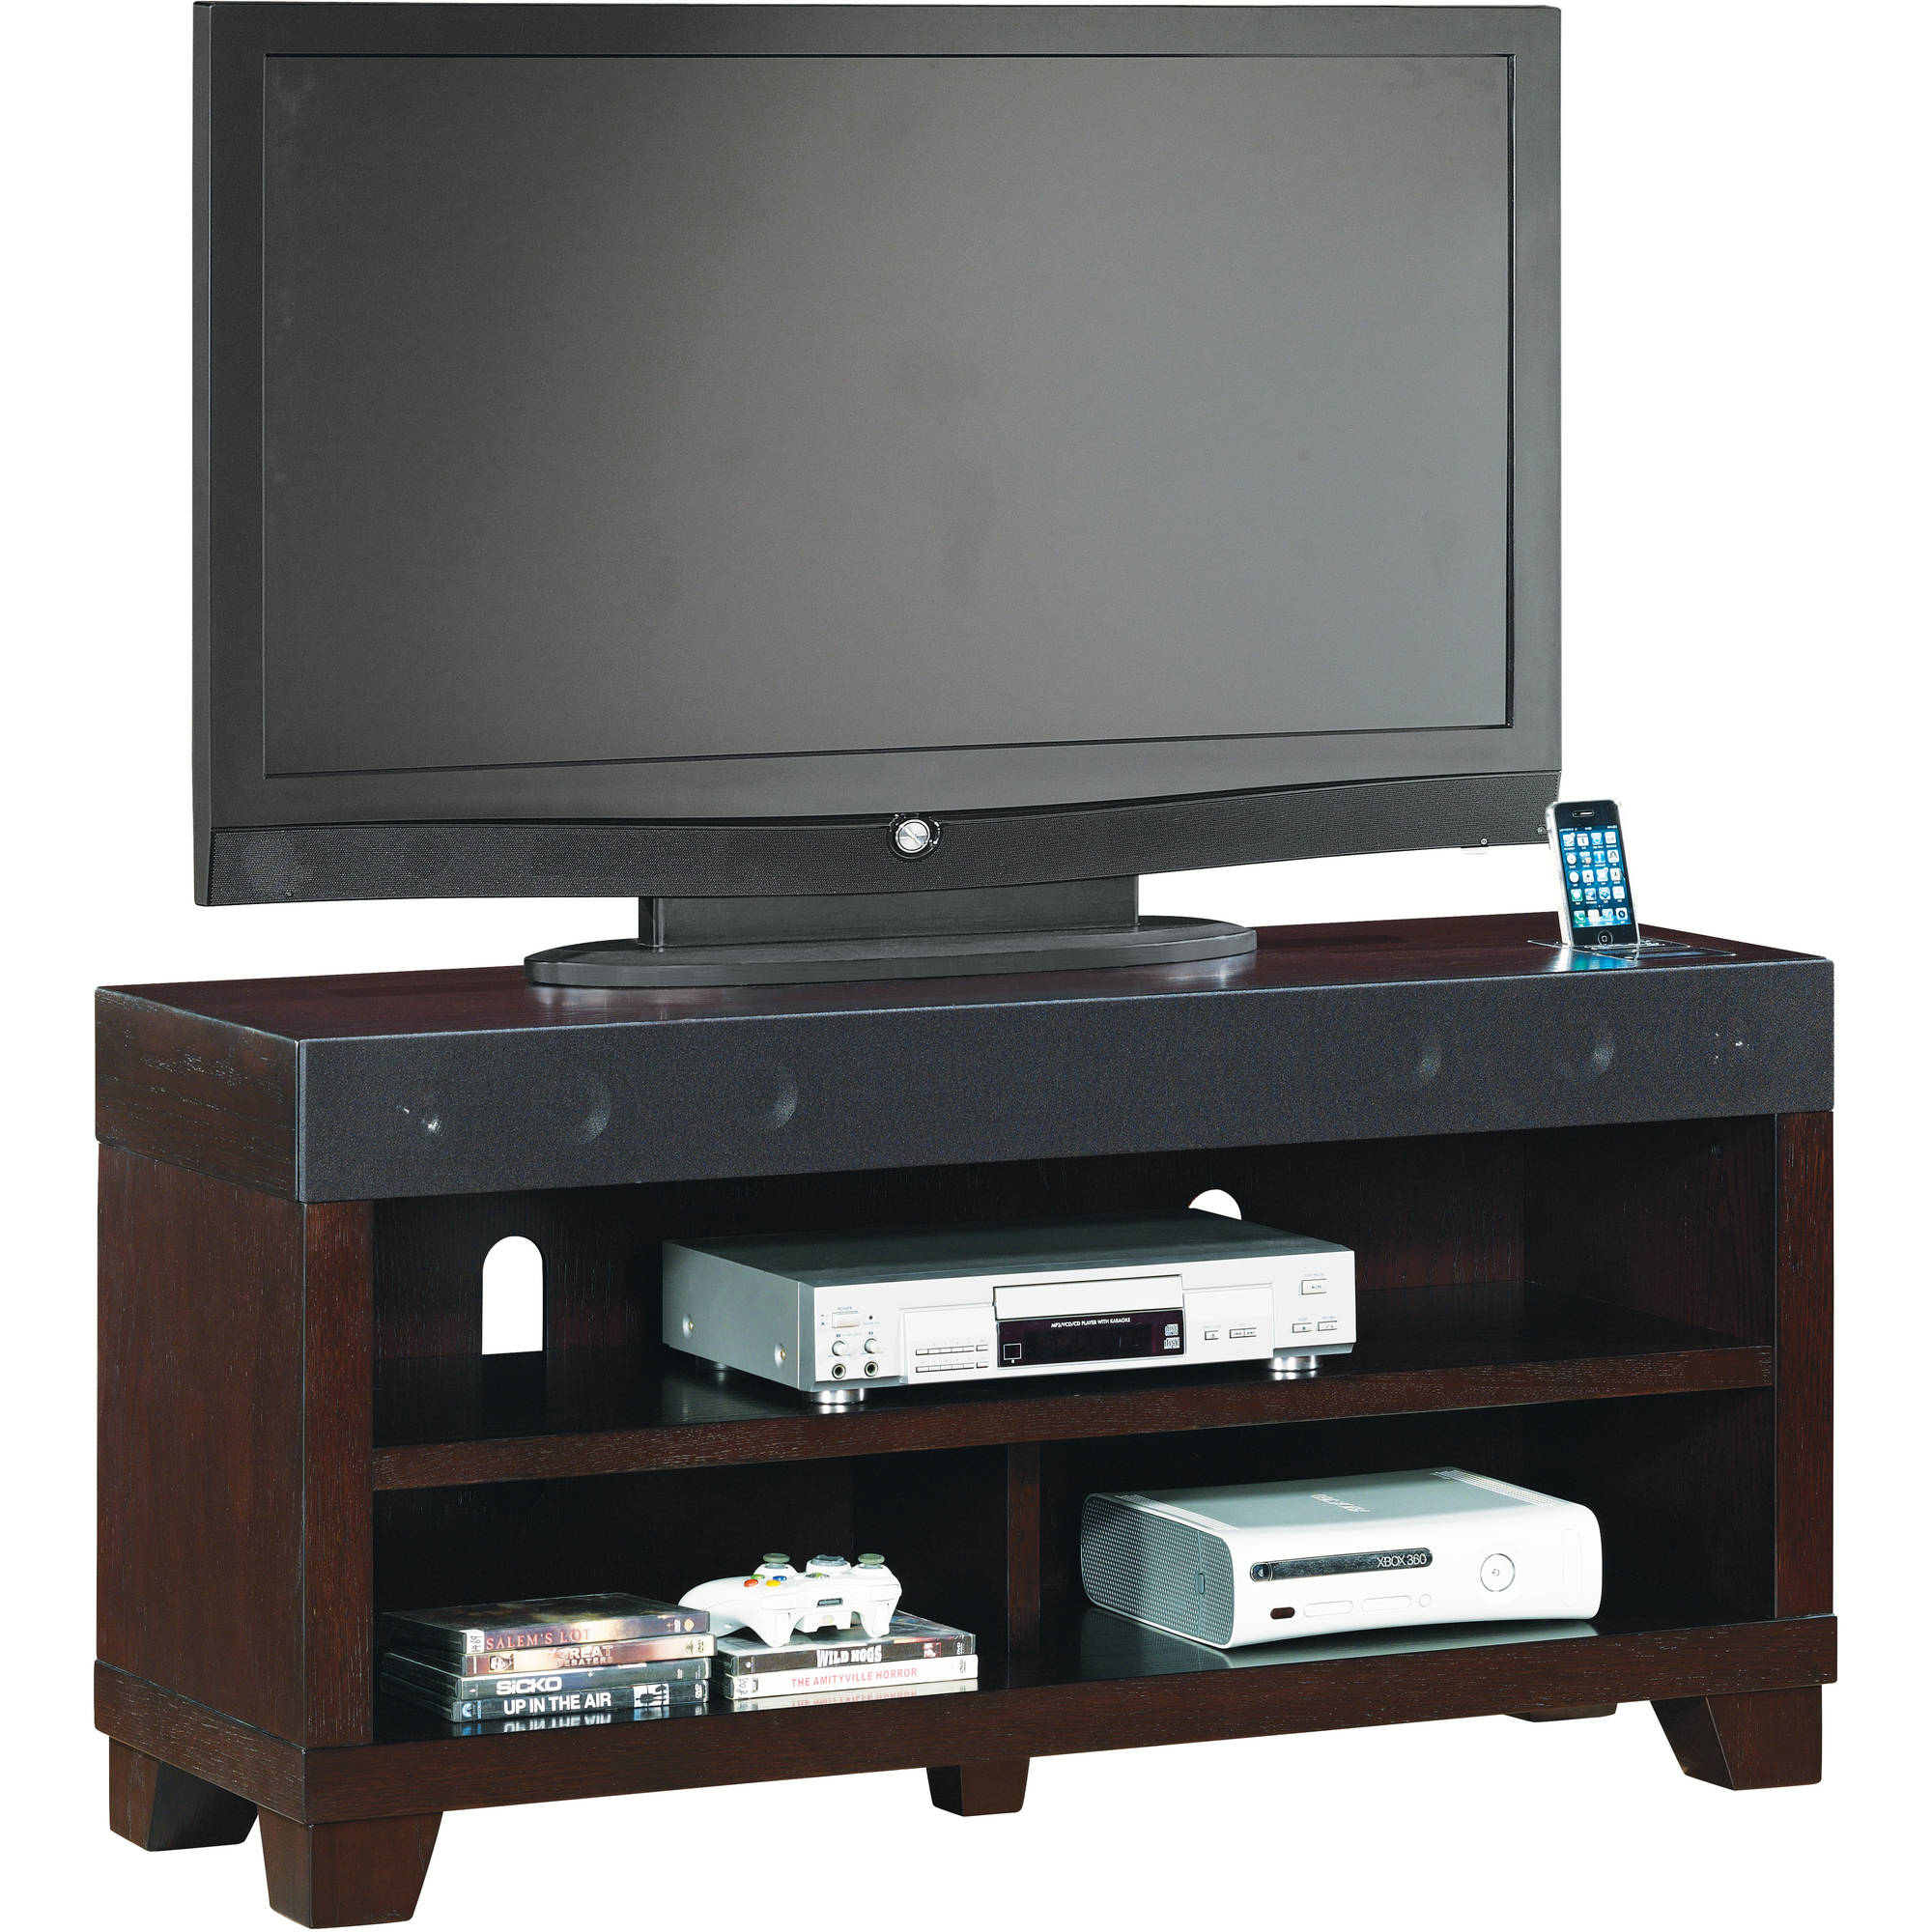 "Gotham TV Stand for TVs up to 70"", Silver/Black"